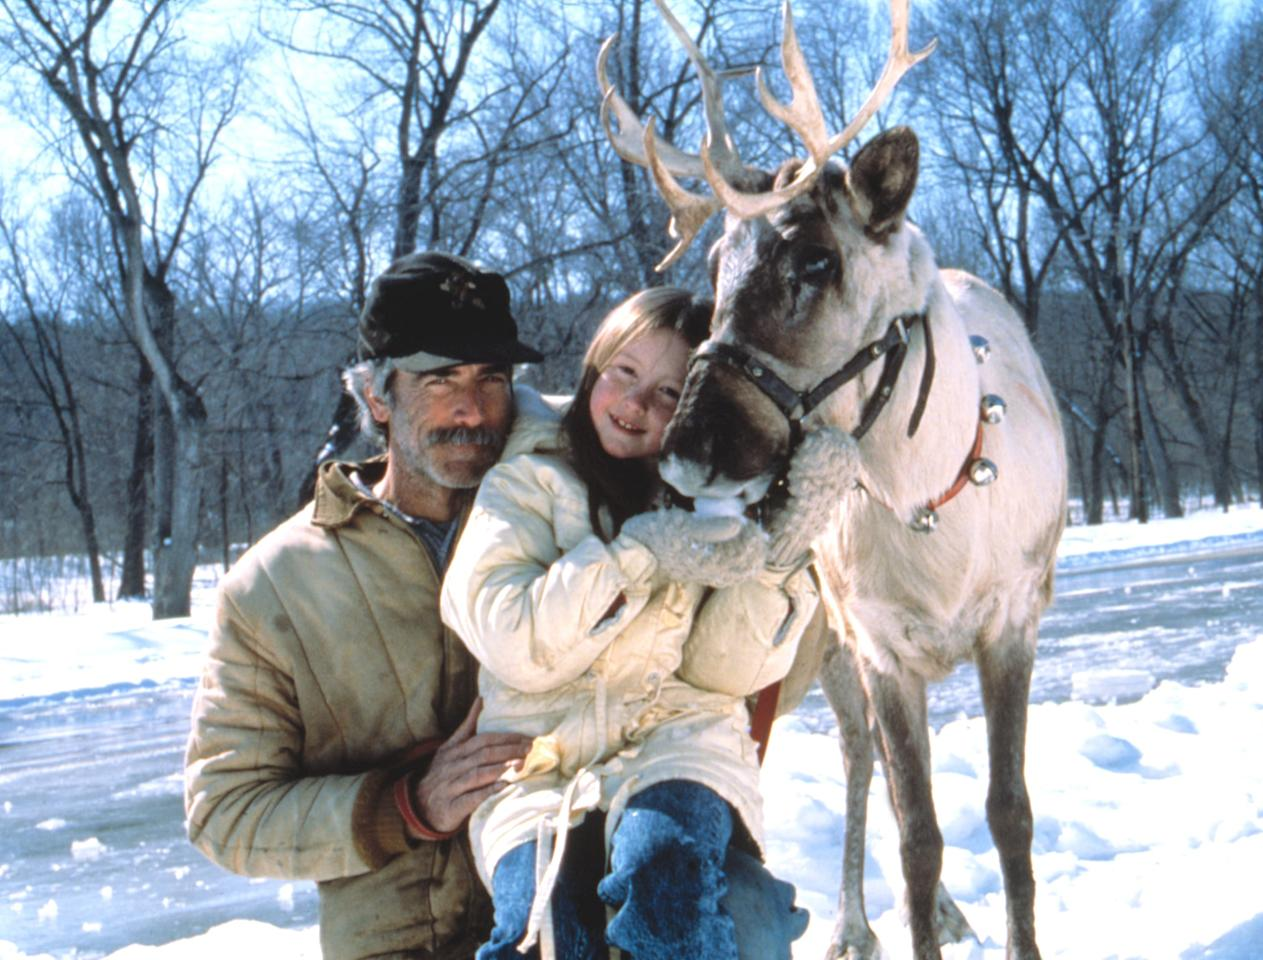 <p>In this 1989 family-friendly flick, a young girl who refuses to lose faith in Santa Claus discovers a wounded reindeer in the woods. Believing him to be Prancer, she works with a kindly vet to bring the animal back to health.</p> <p><strong>When it's available: </strong>Dec. 1</p>